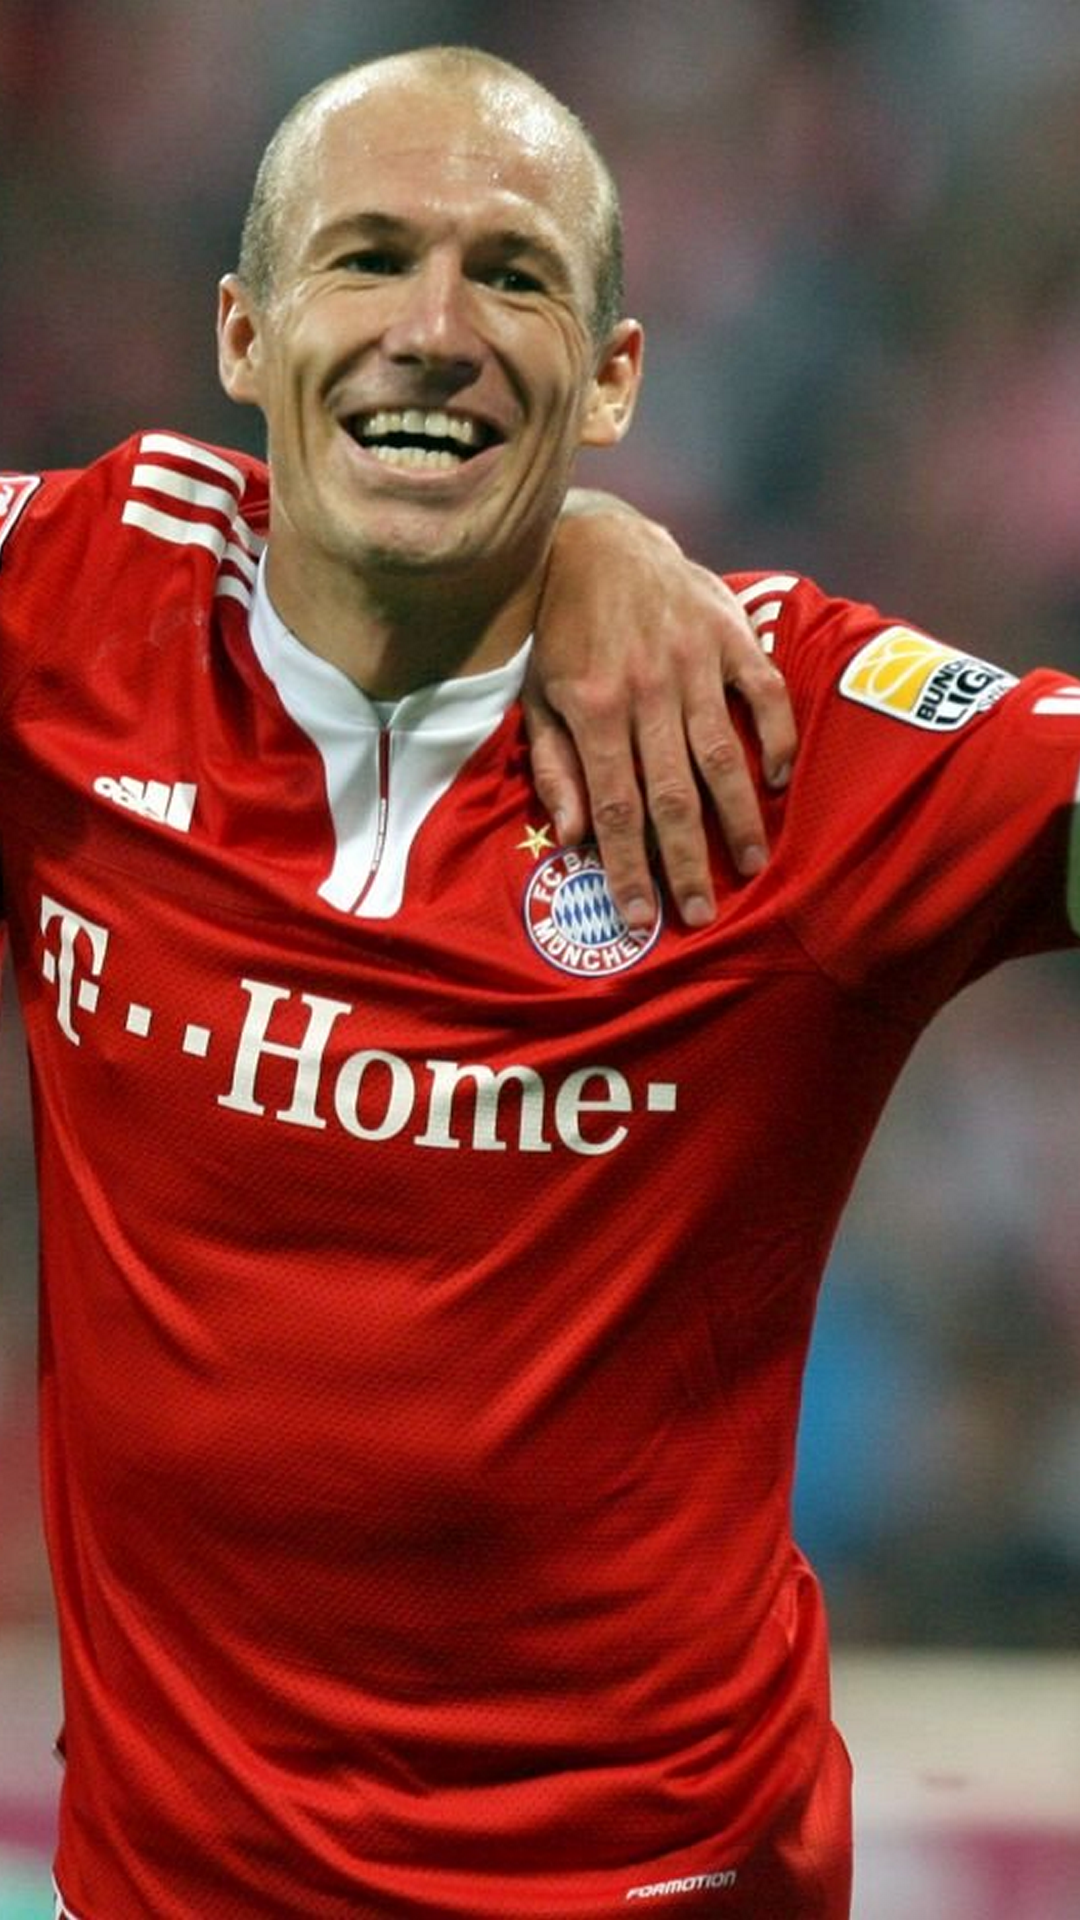 FC Bayern Munch, Arjen Robben, fondos galaxy s4, fondos de pantalla galaxy s4, sfondi samsung galaxy s4, hintergrund, ????, 1080x1920 pixels, portraid mode background for smartphone